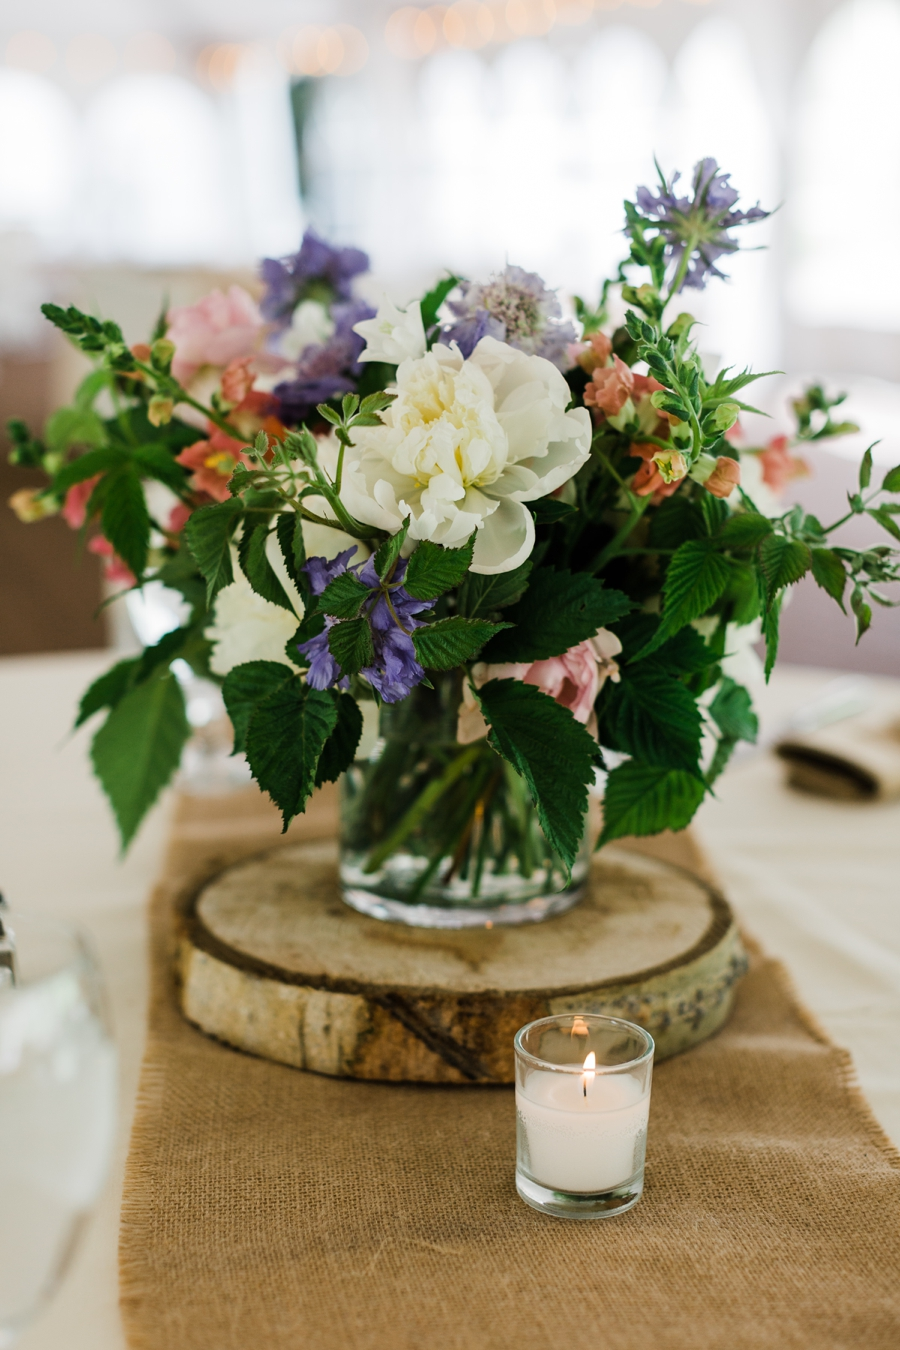 Colorful summer wedding centerpiece display by Flower by Chloe of Jackson Hole